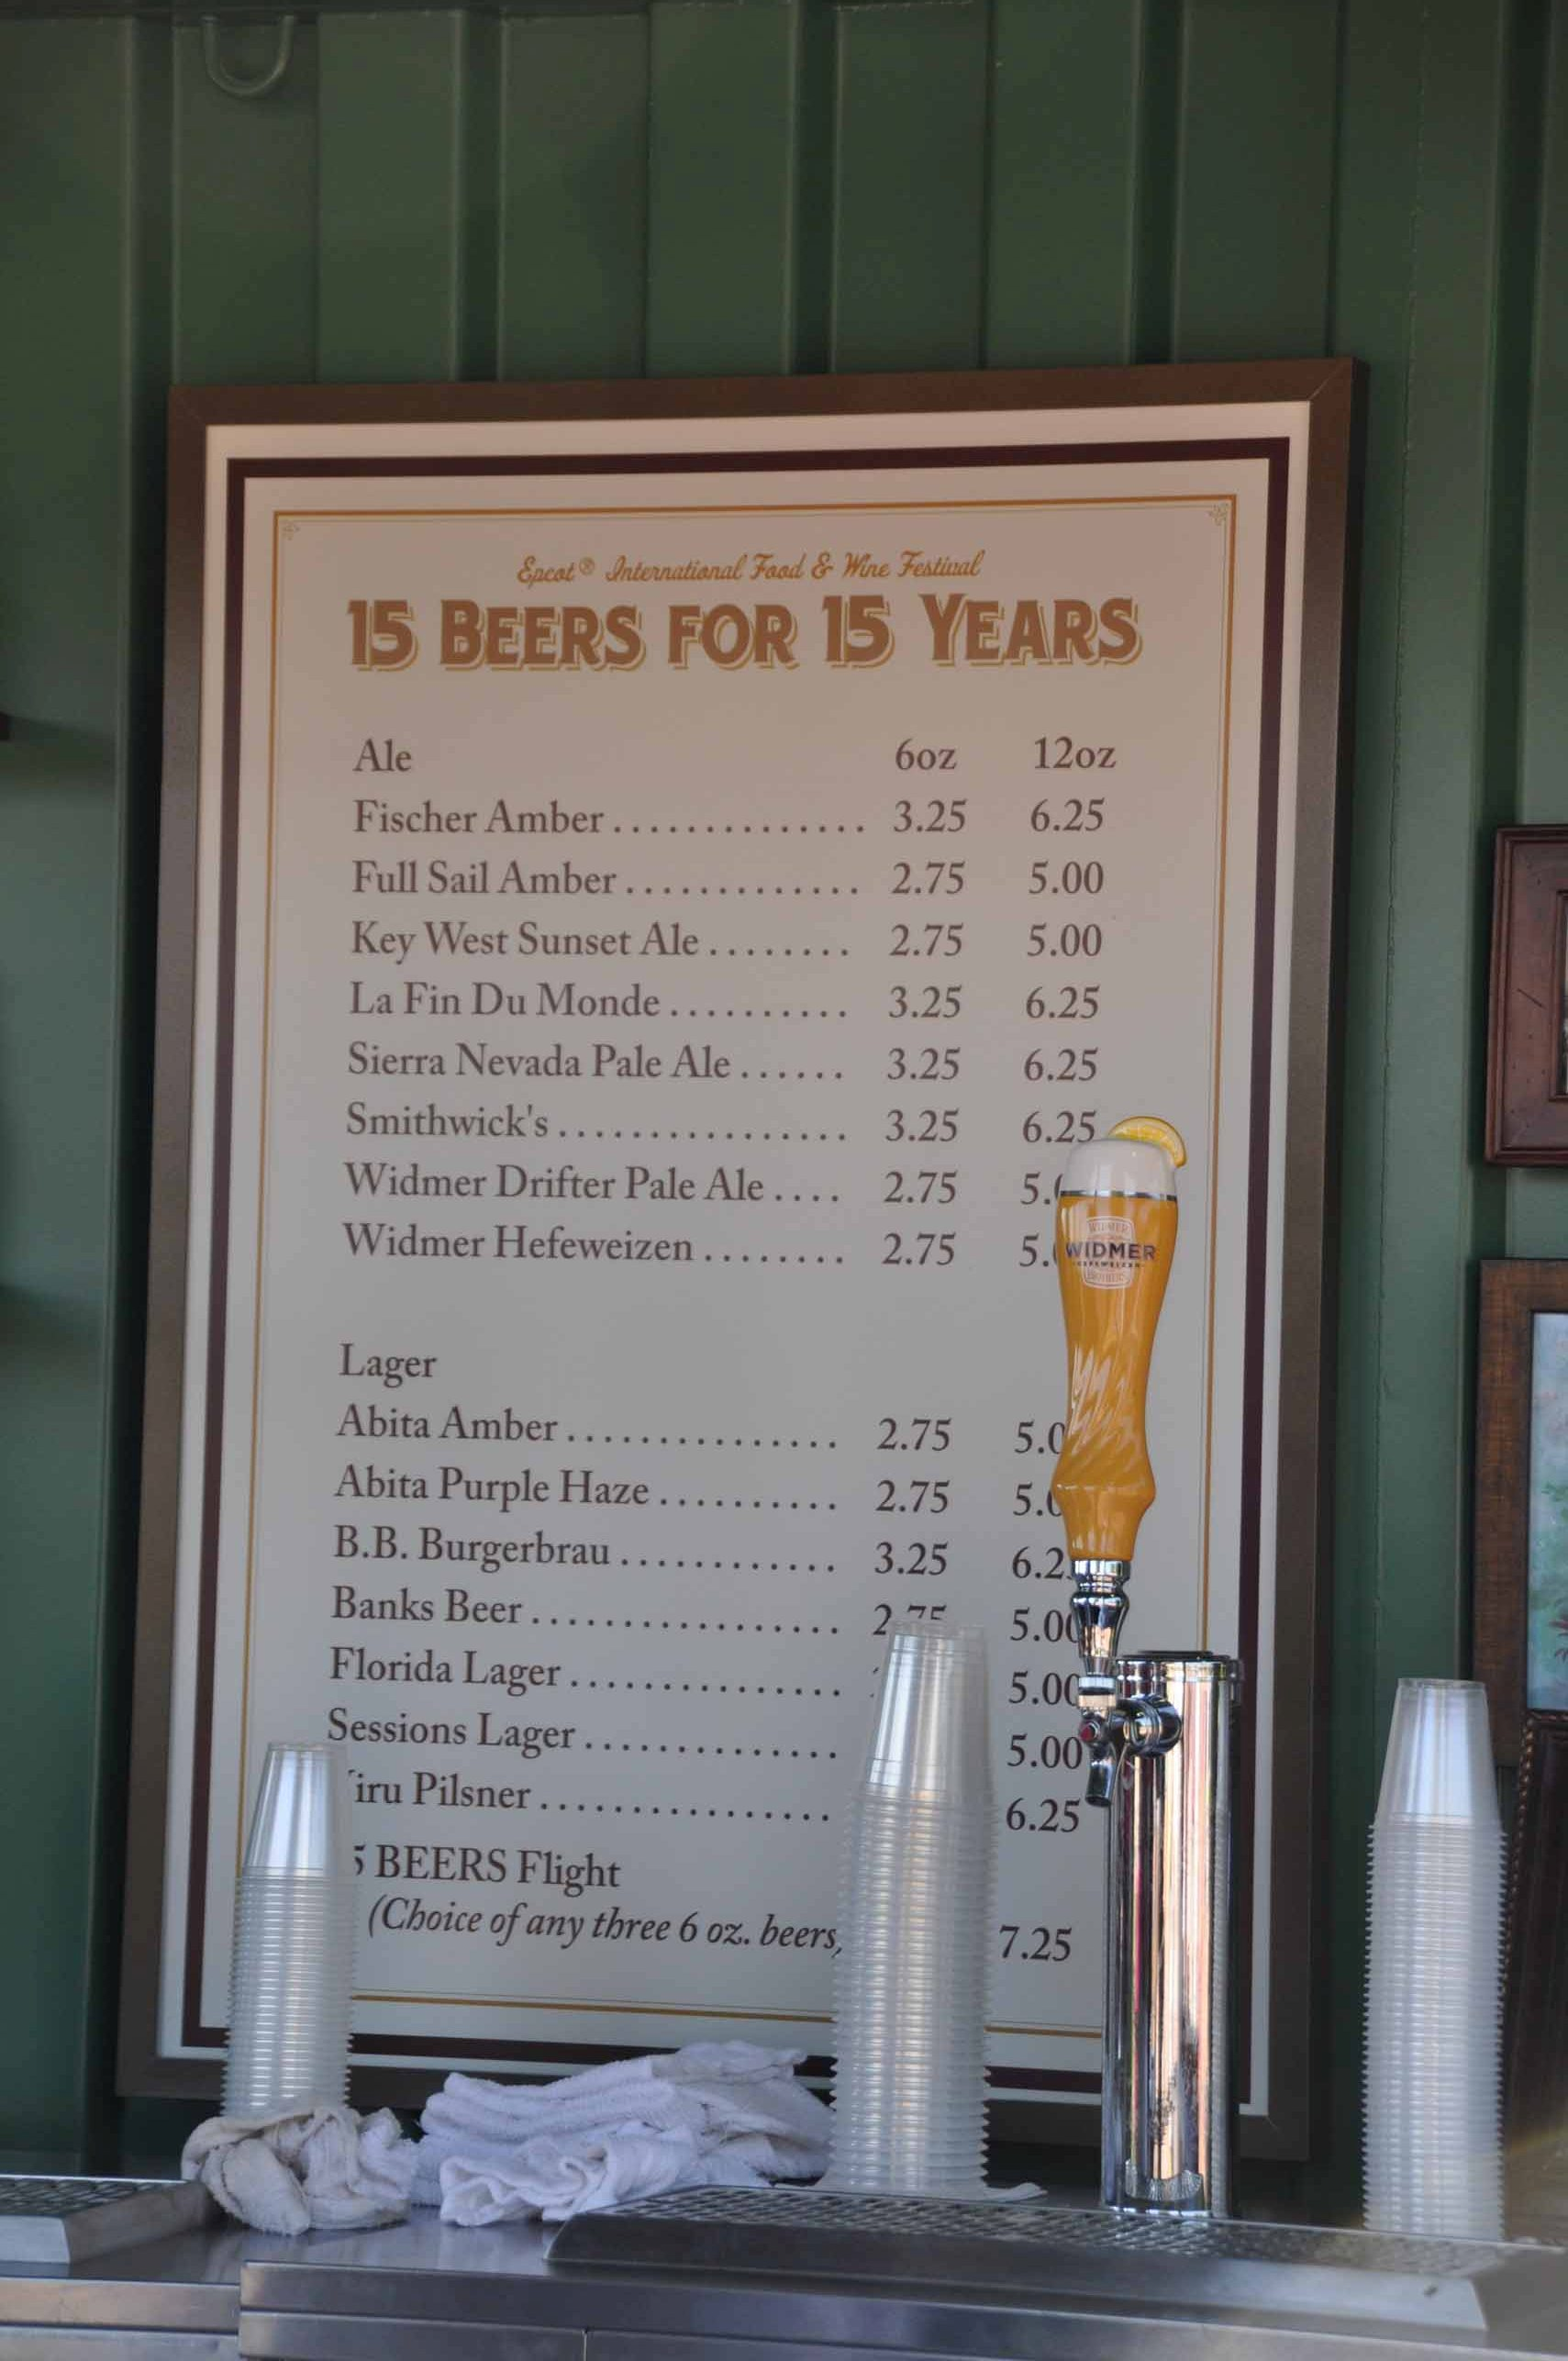 15 Beers for 15 Years